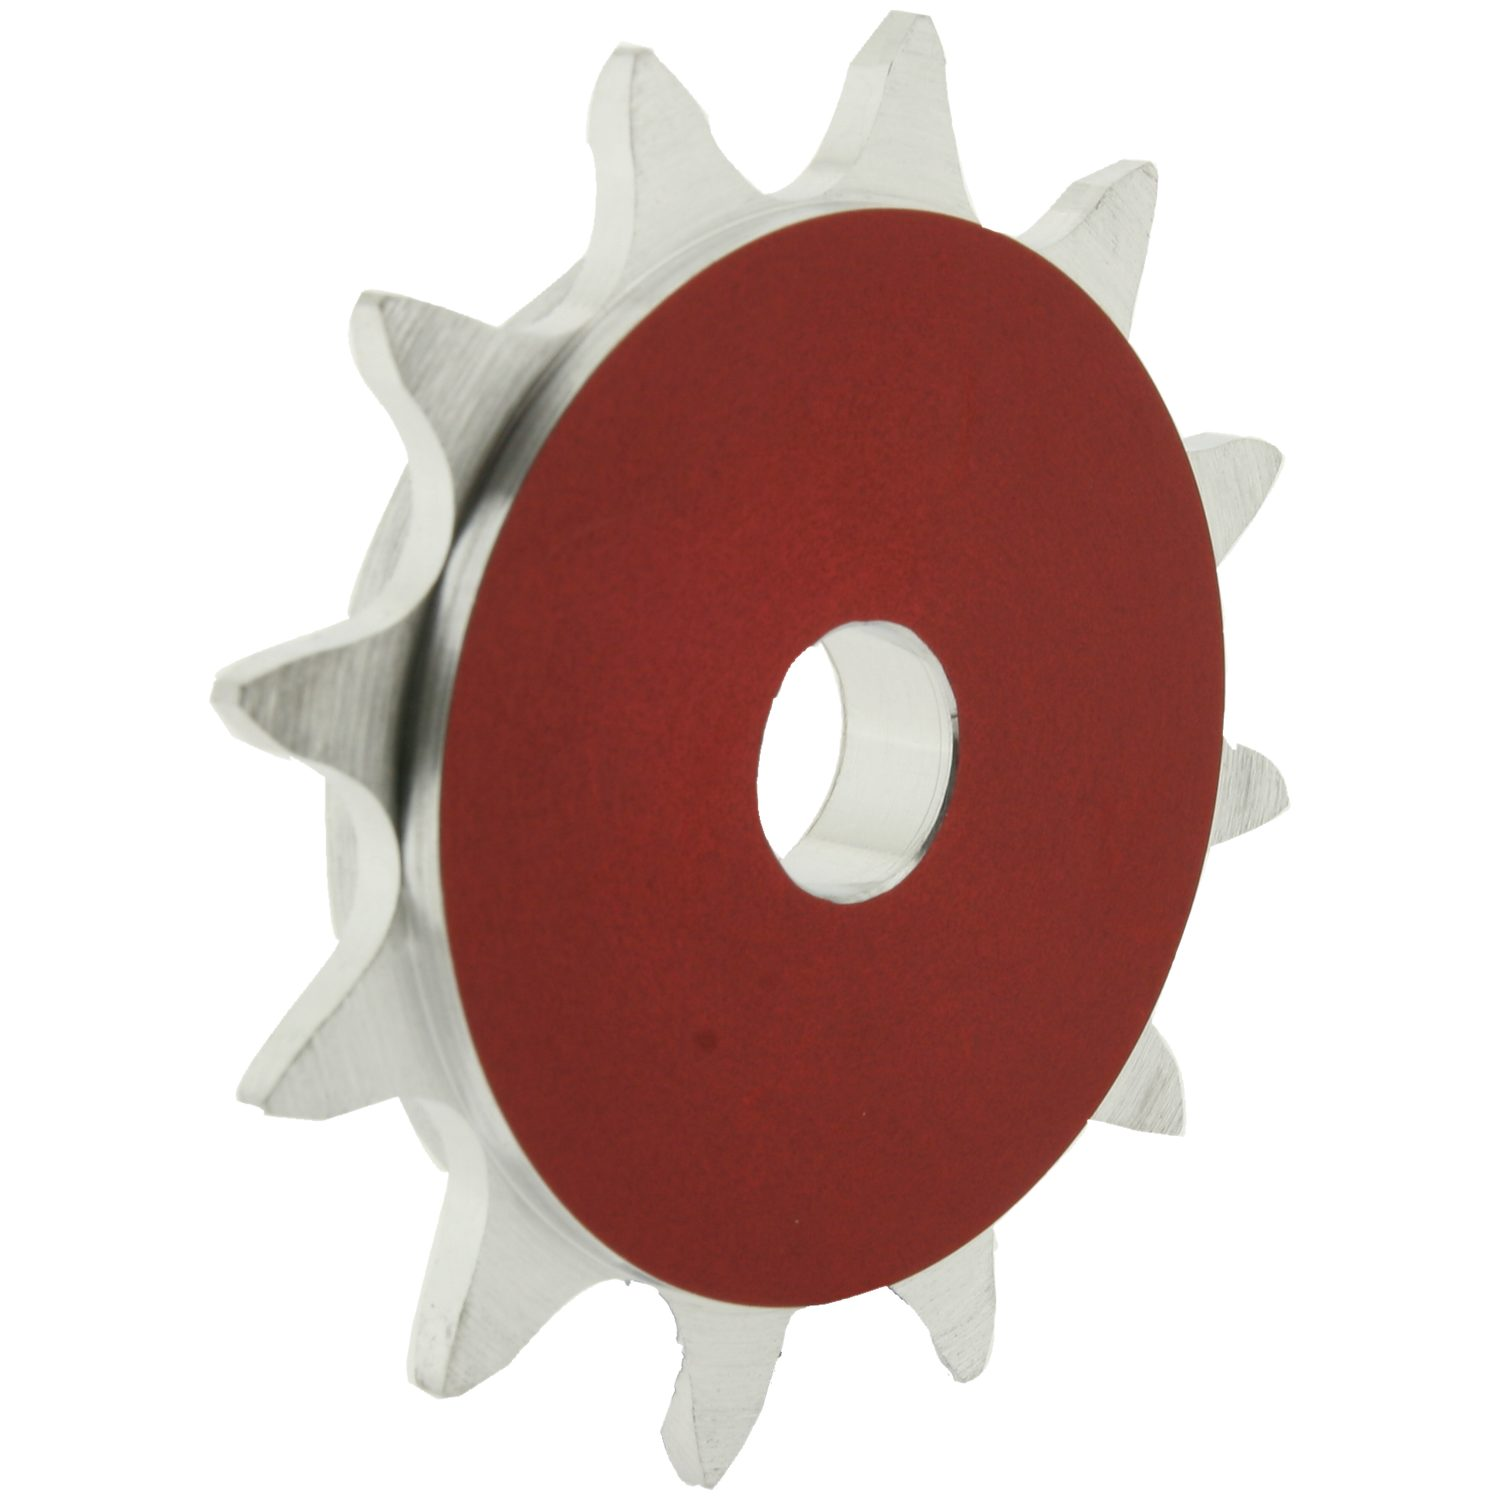 R1300.4 - Sprockets - aluminium, hubless